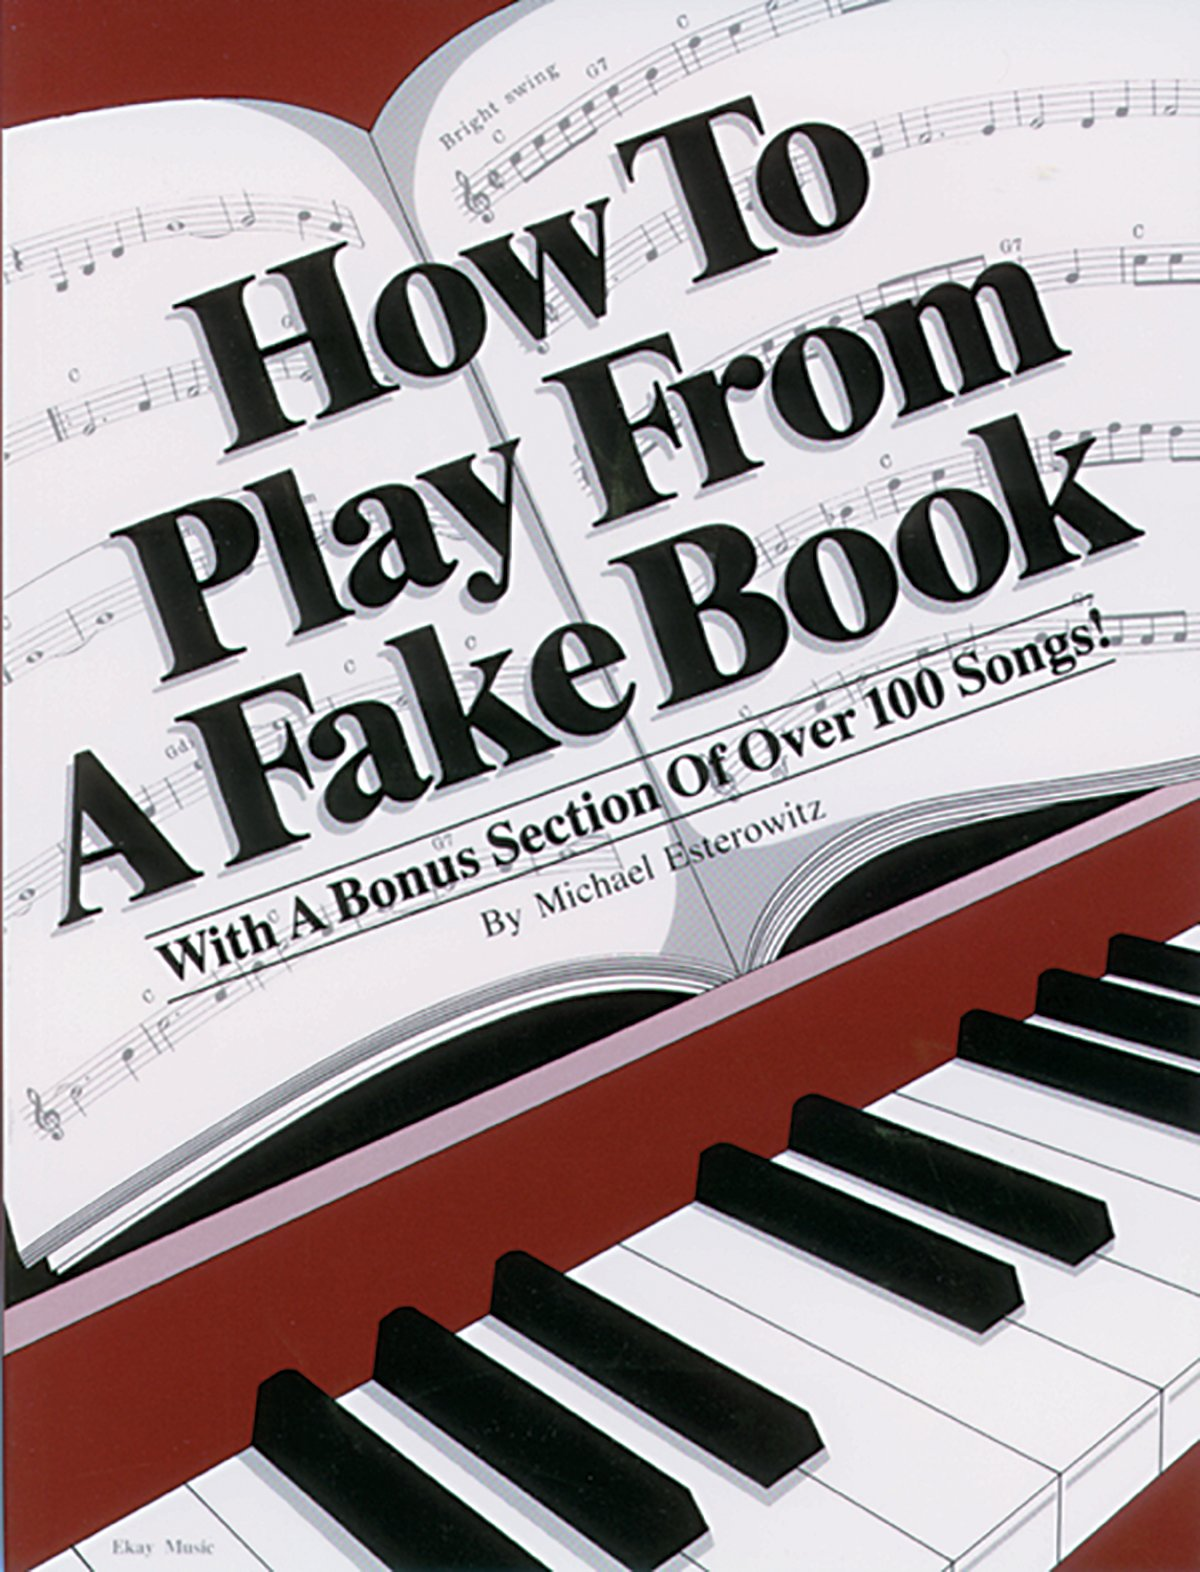 how to play from a fake book michael esterowitz 0029156218251